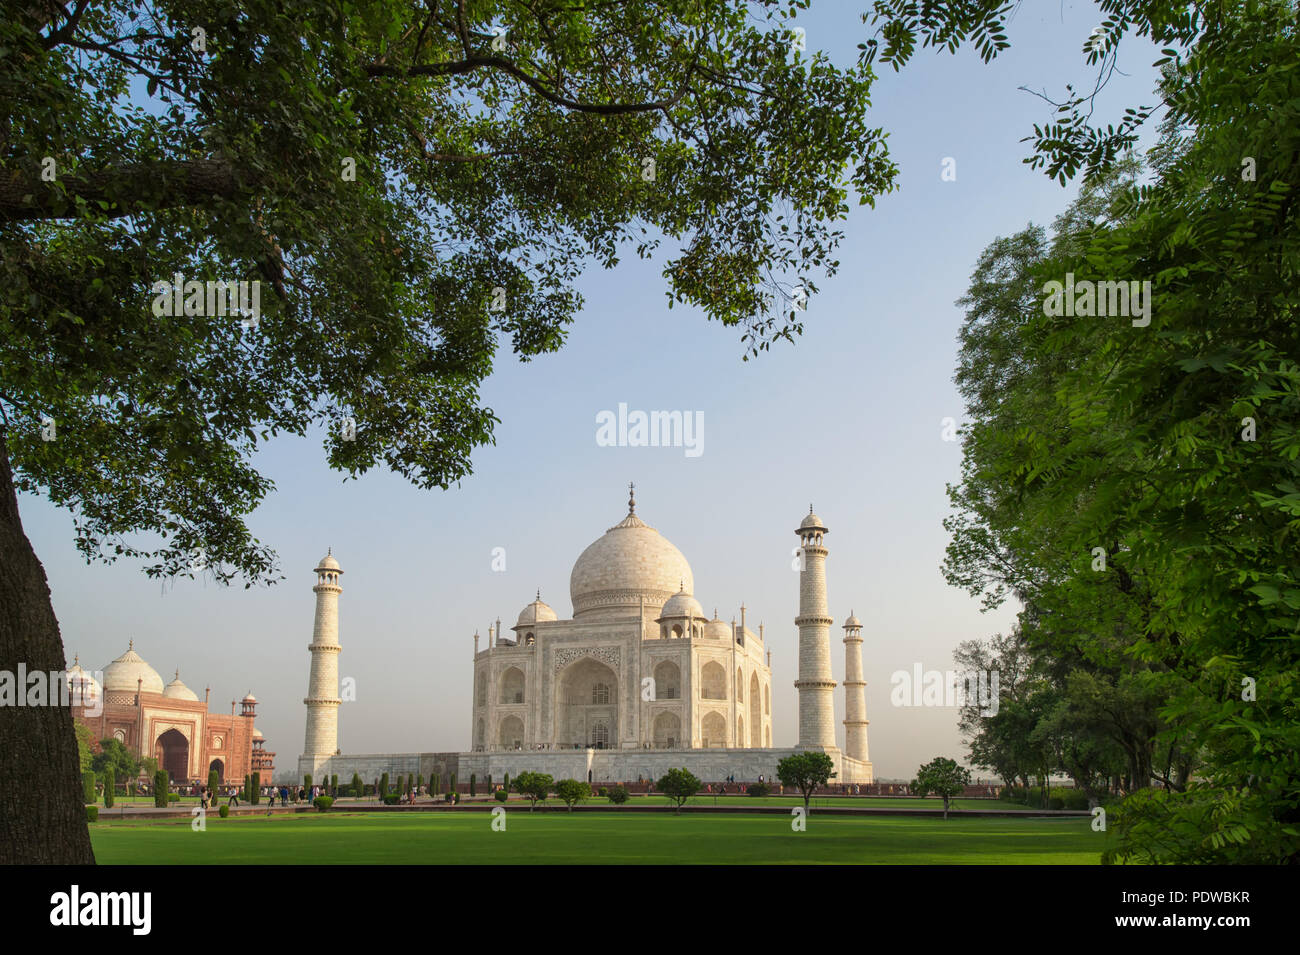 Beautiful landscape of the Taj Mahal from north side across the Yamuna river at sunset - Stock Image